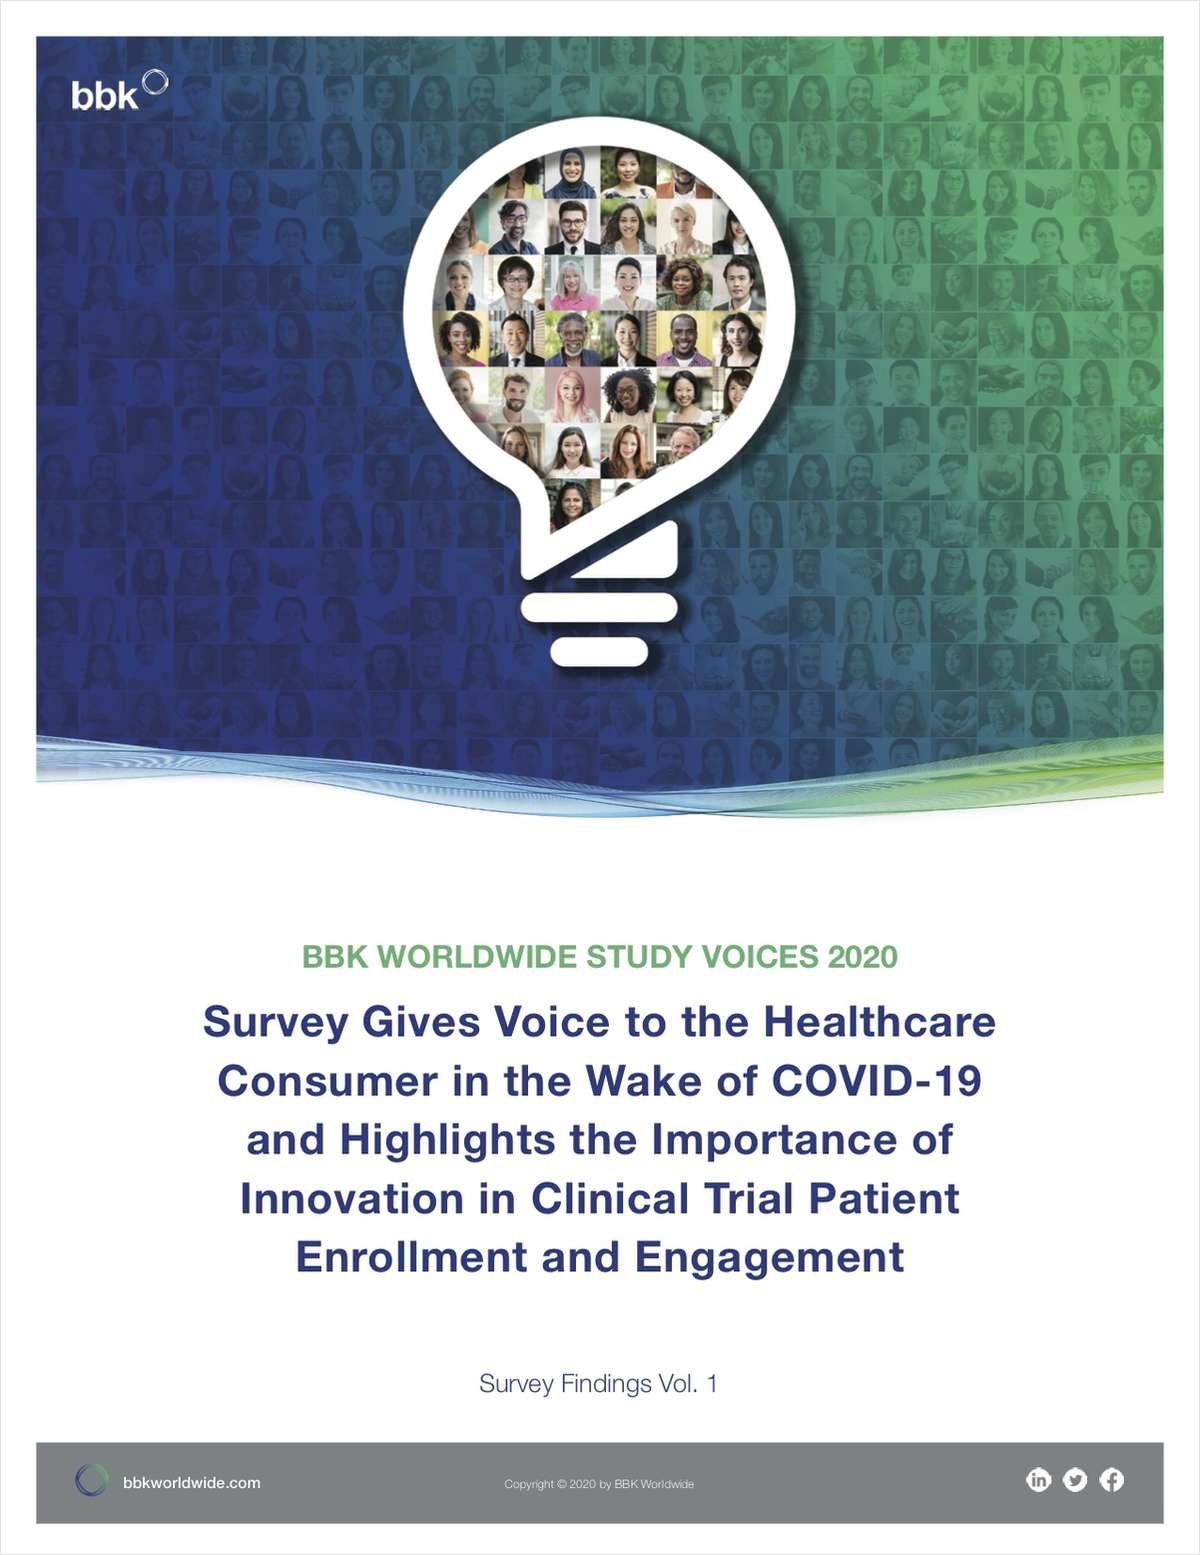 [WHITEPAPER] Survey Reveals Demand for Clinical Trial Innovation in the Wake of COVID-19